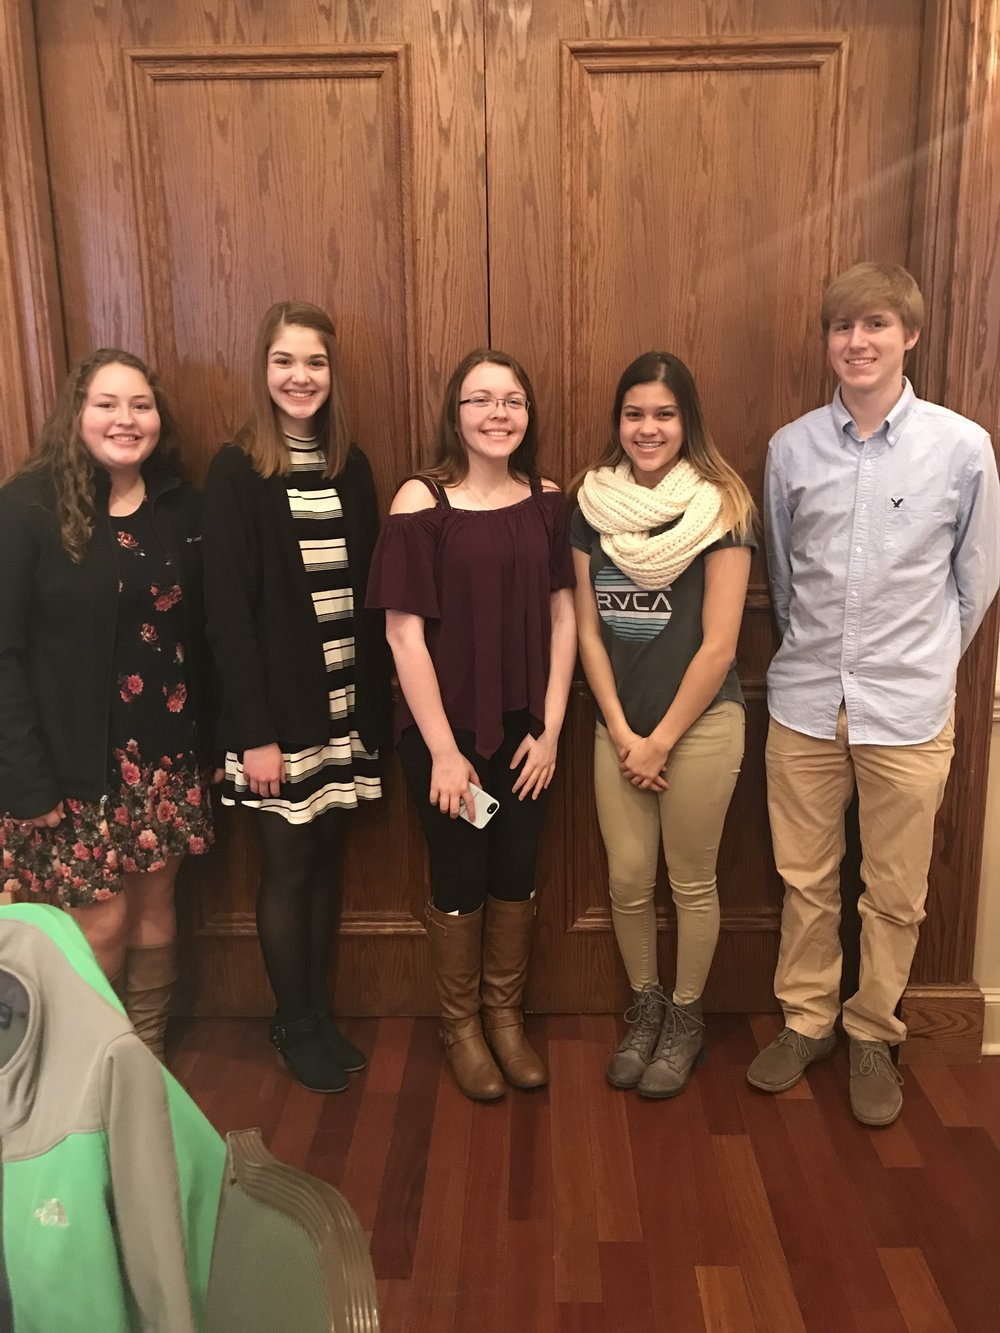 Faith Burge, Erin Anderson, Danielle Simpson, Kiara Colunga, and Trey Houmes- our delegates at the KDASC District Convention.